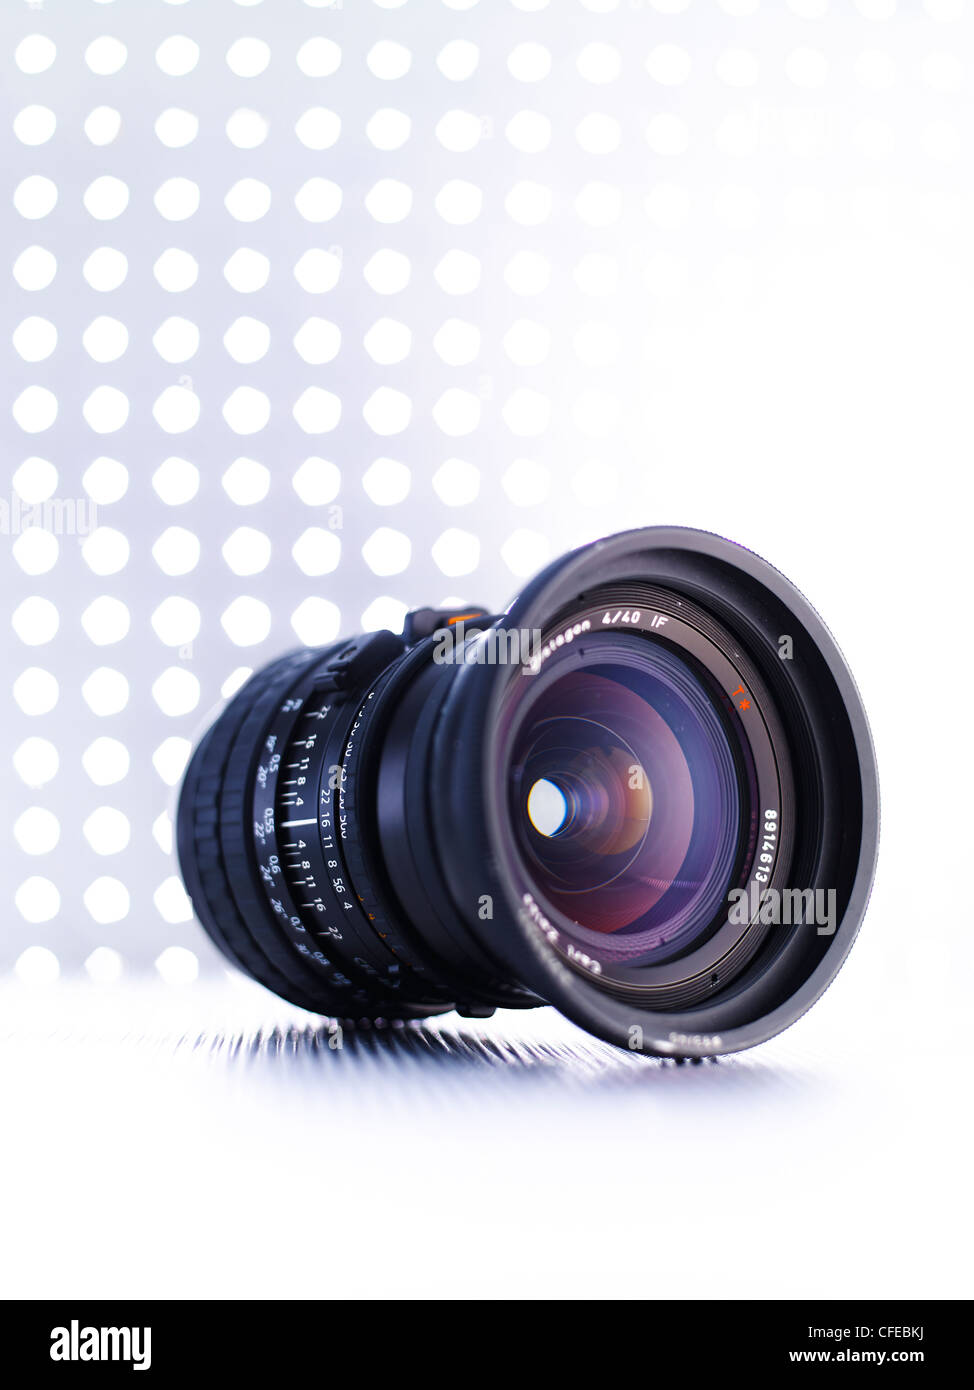 Medium format wide angle lens - Stock Image